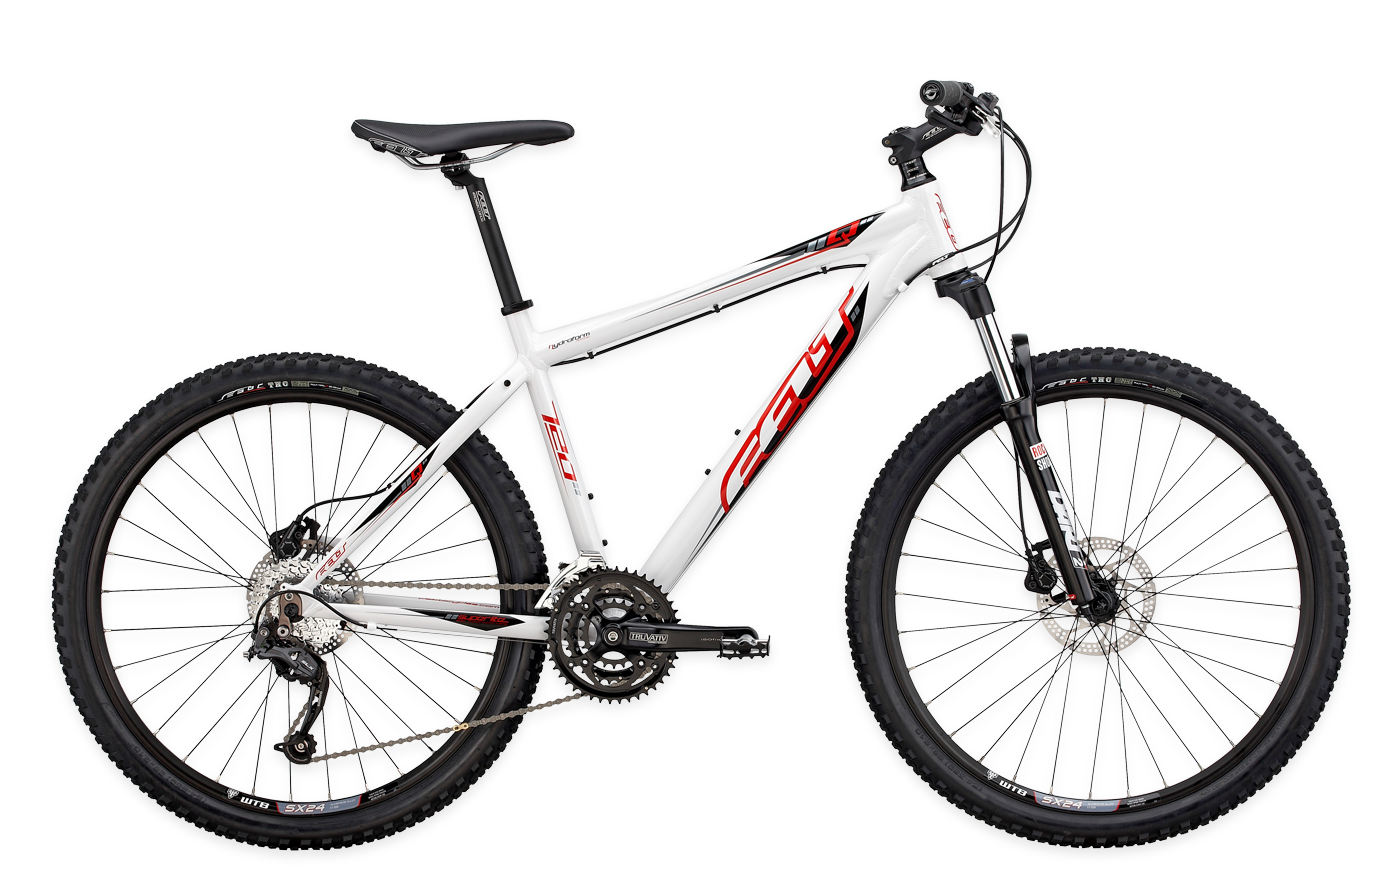 Bicycle File PNG Image